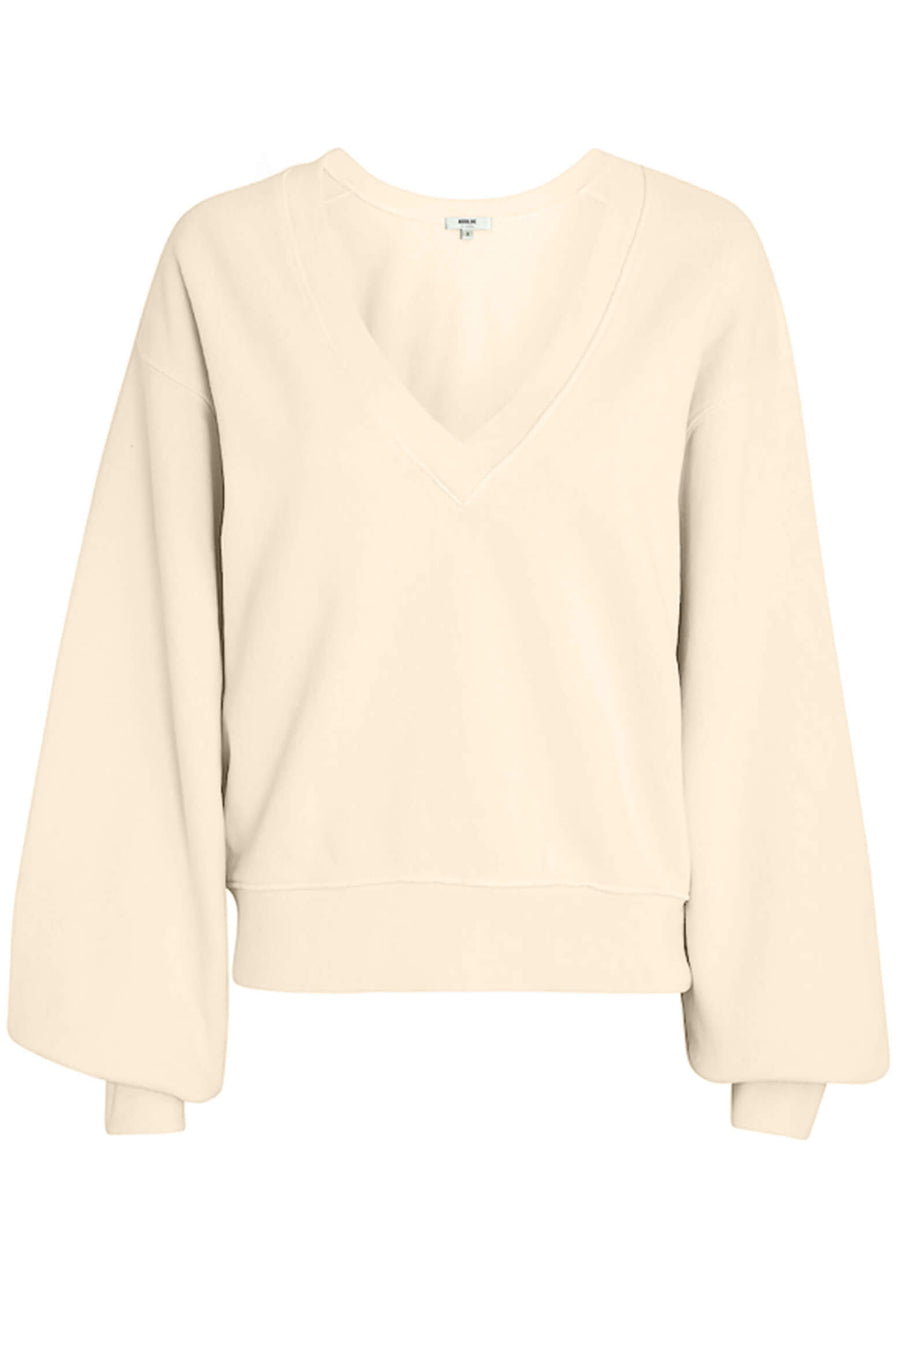 Agolde V Neck Balloon Sleeve Sweatshirt in Penne available at The New Trend